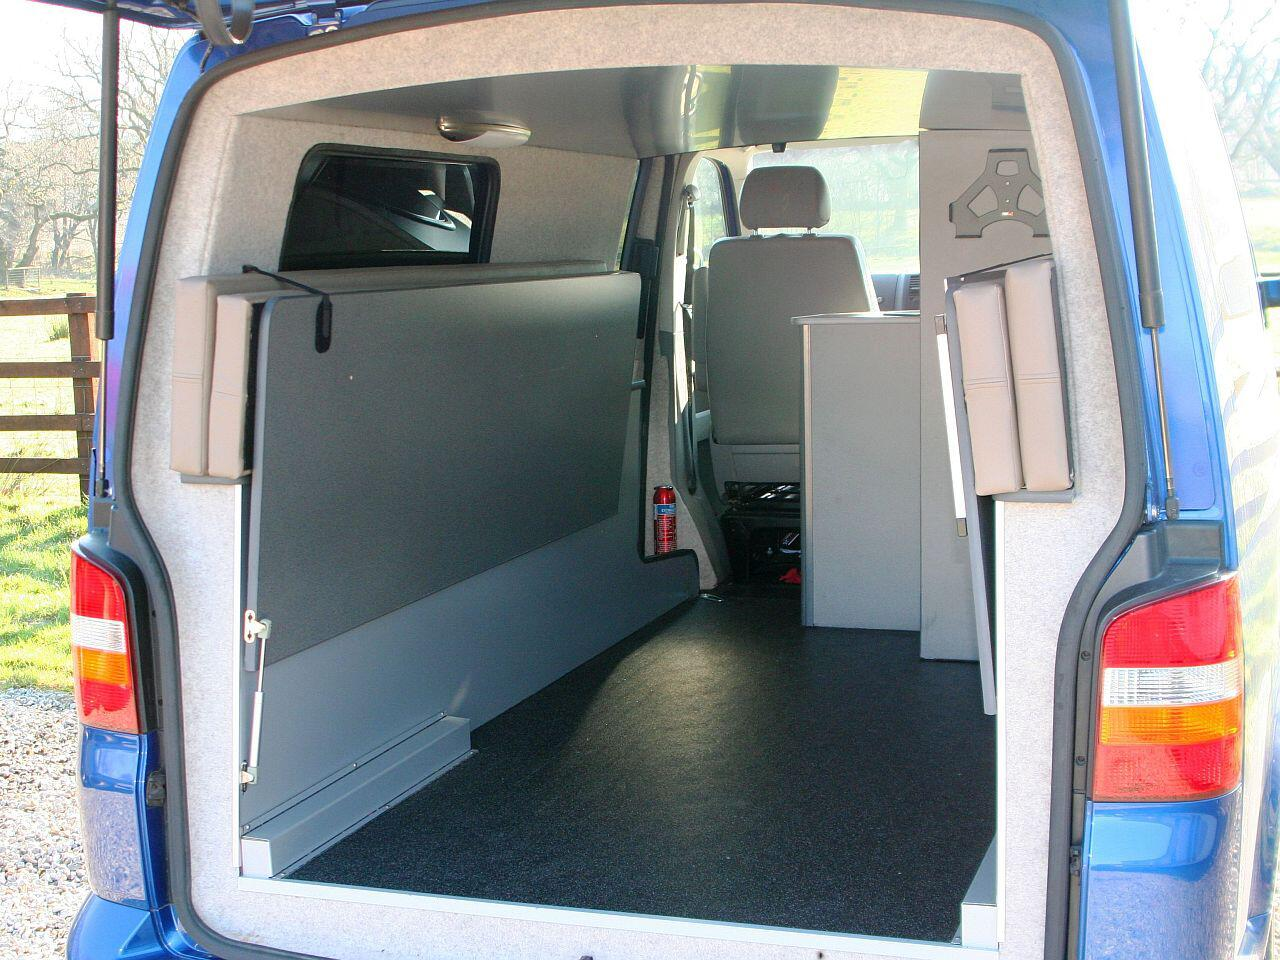 ungew hnlicher umbau der vw t5 doubleback mit extra. Black Bedroom Furniture Sets. Home Design Ideas